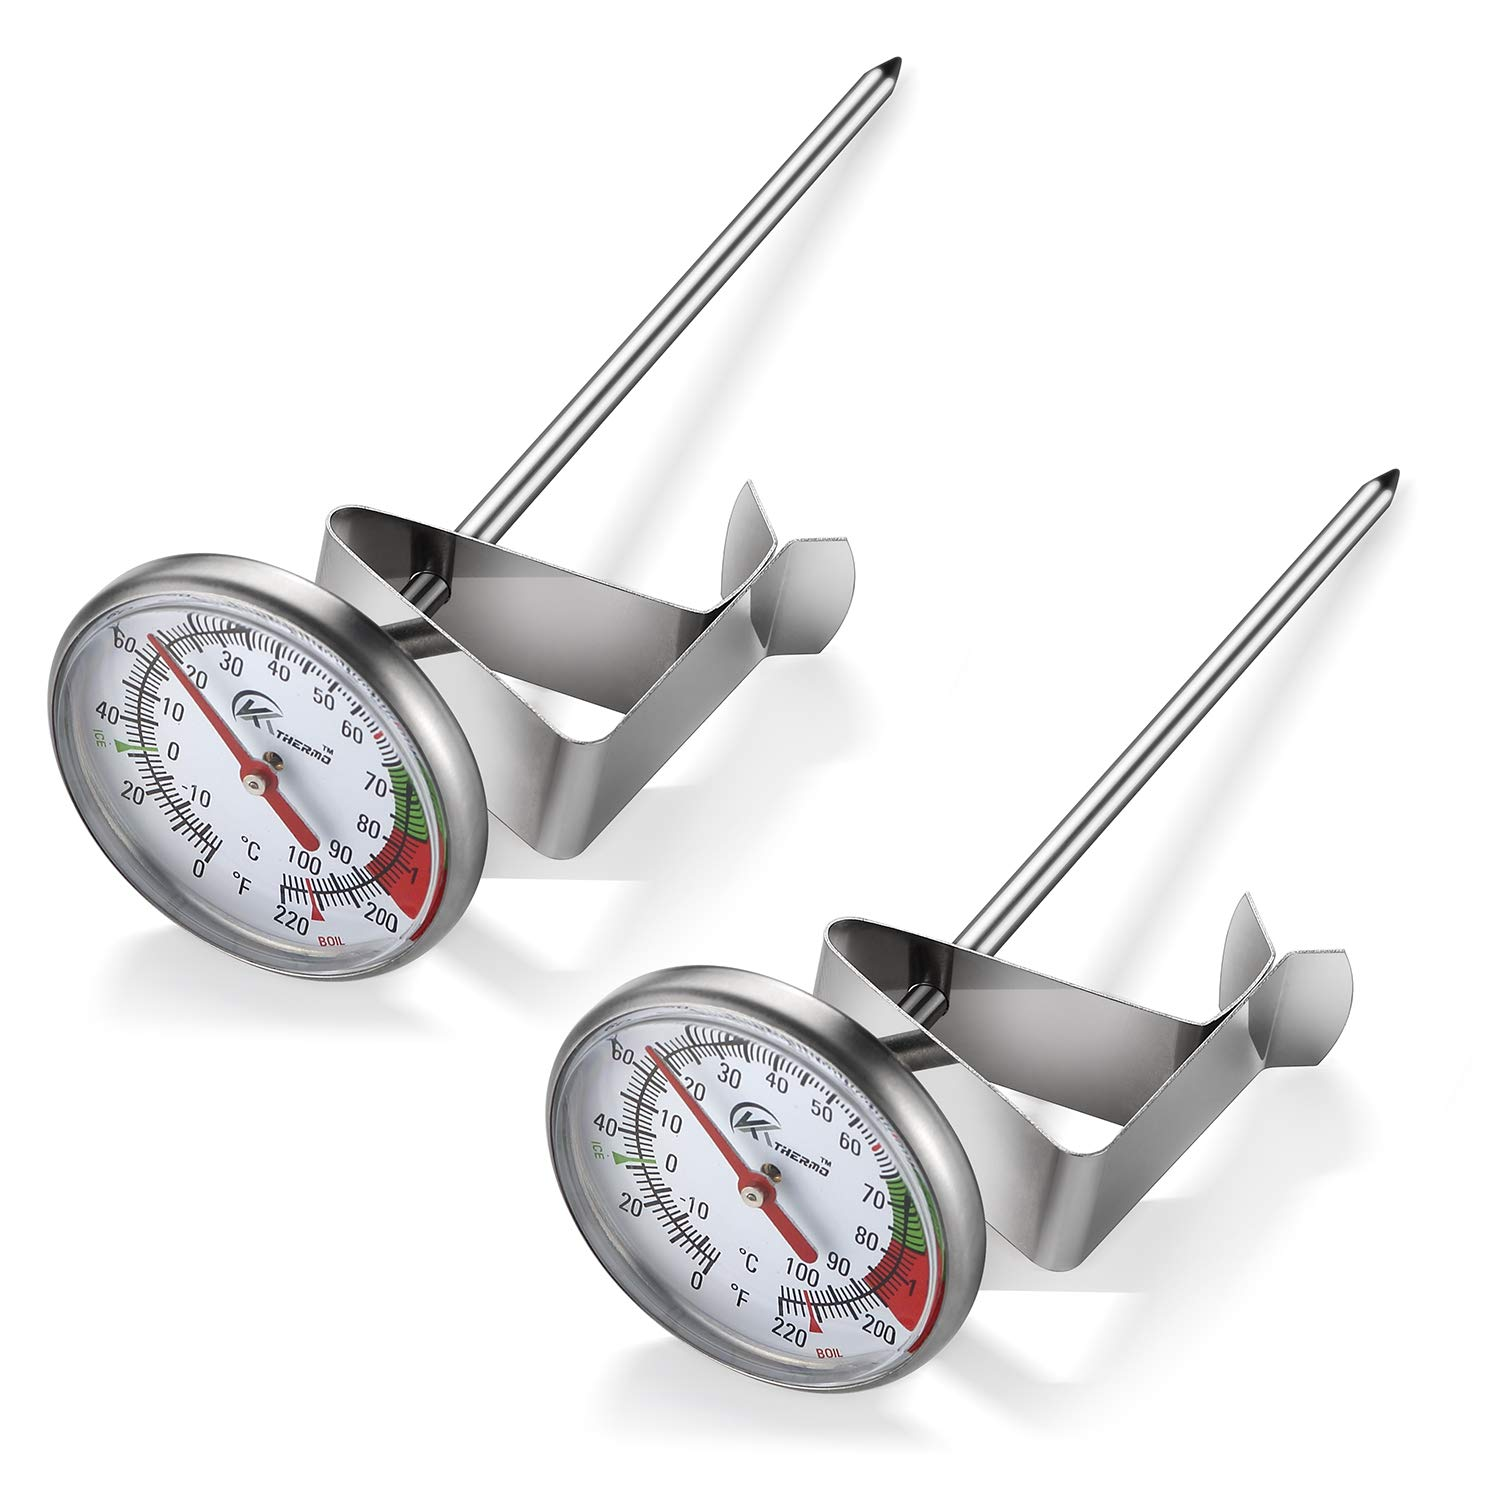 KT THERMO Instand Read 2-Inch Dial Thermometer(2 Pack),Best For The Coffee Drinks,Chocolate Milk Foam